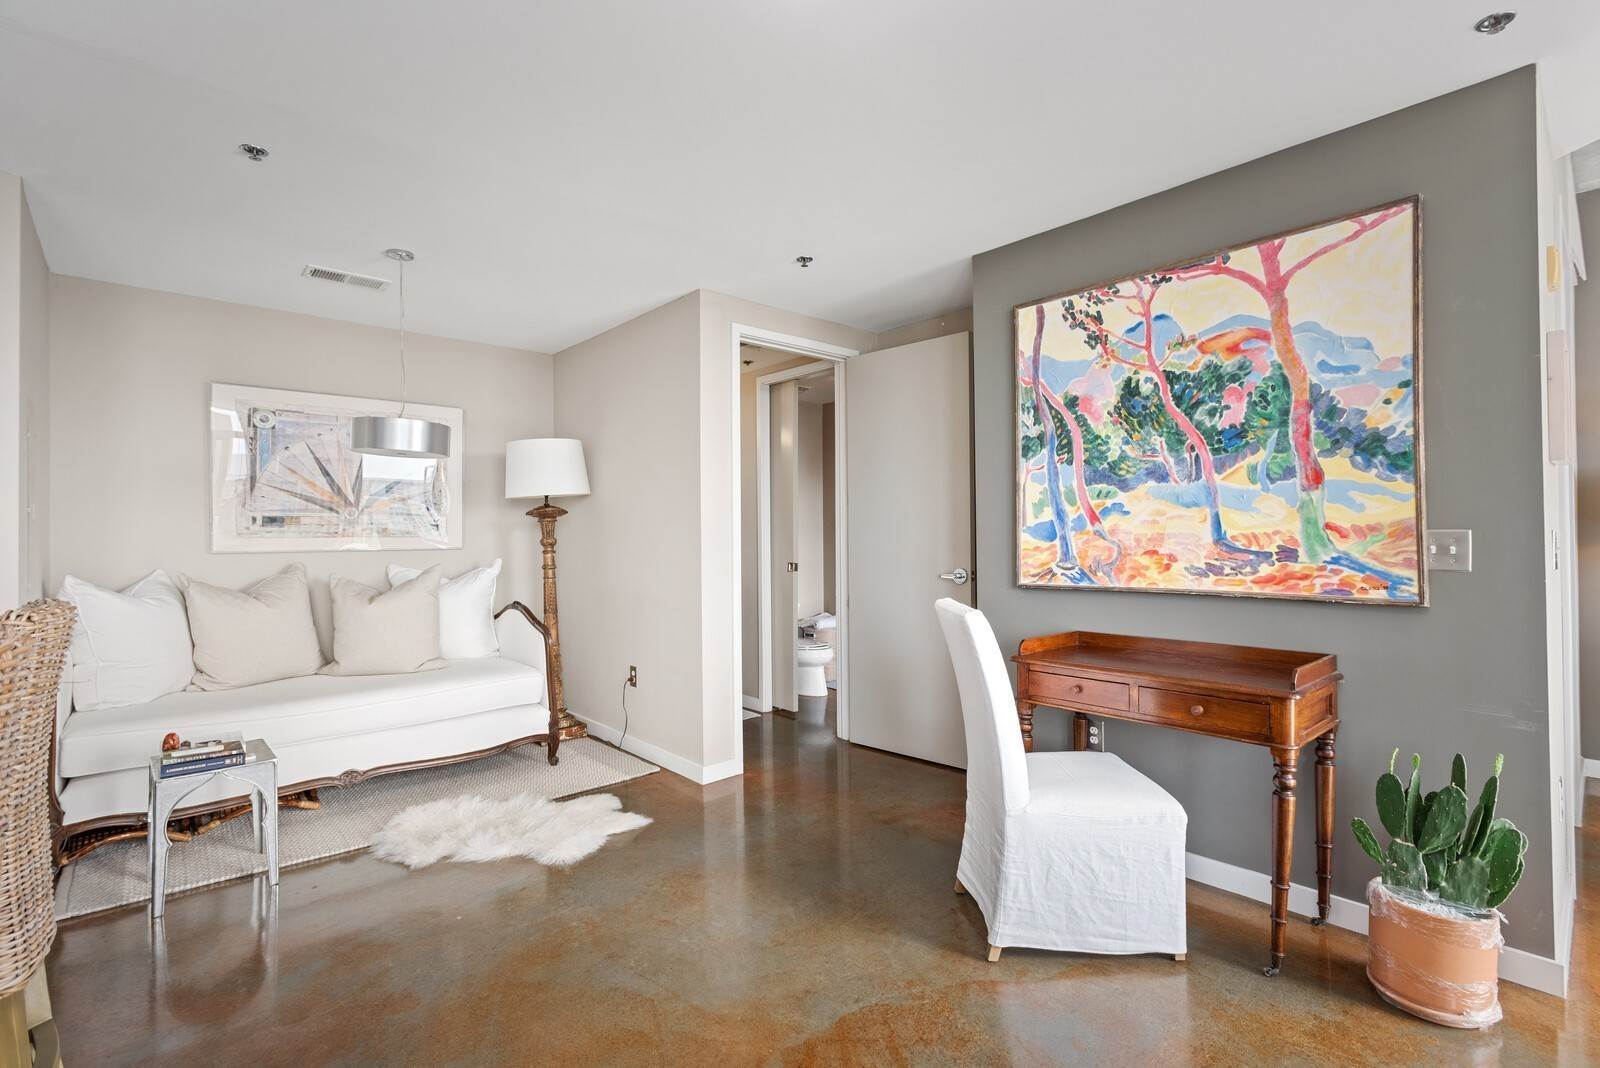 5. High Rise for Sale at 600 12th Ave, S Nashville, Tennessee 37203 United States